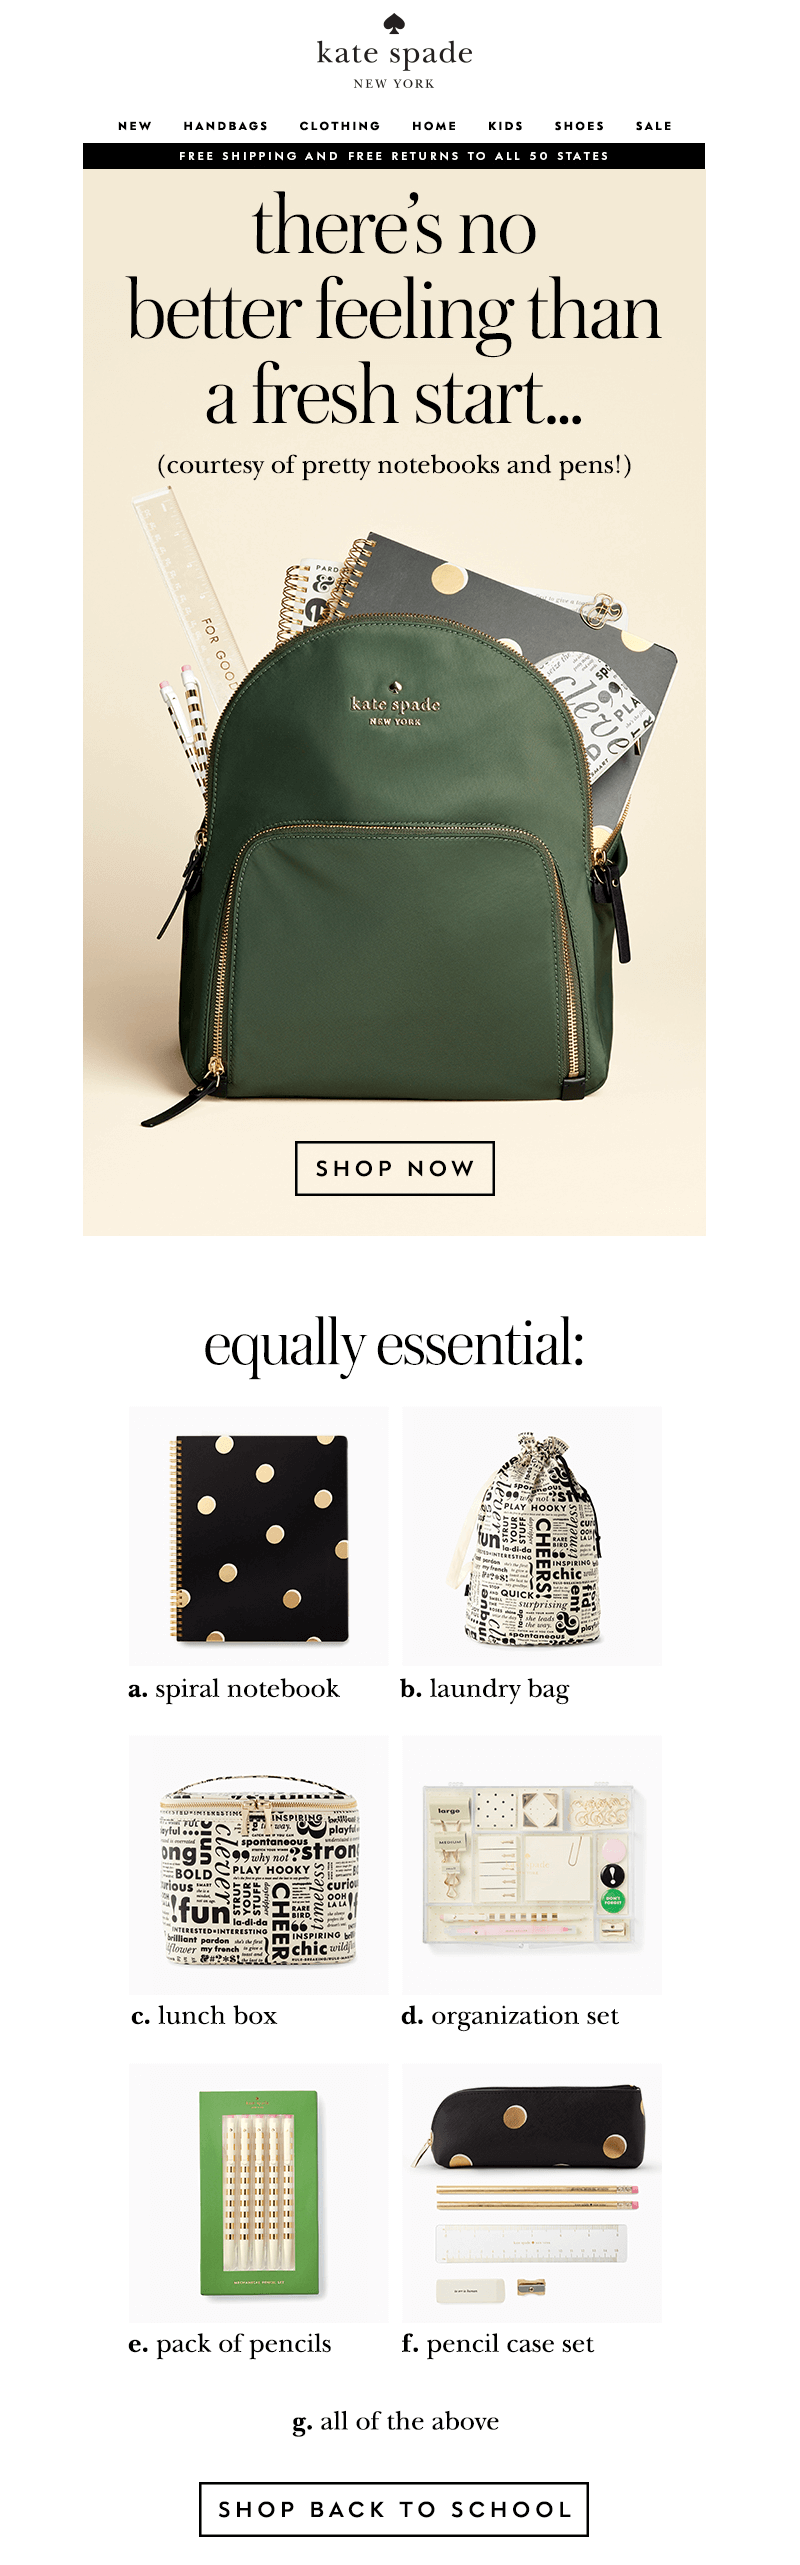 kate spade back-to-school-email-designs